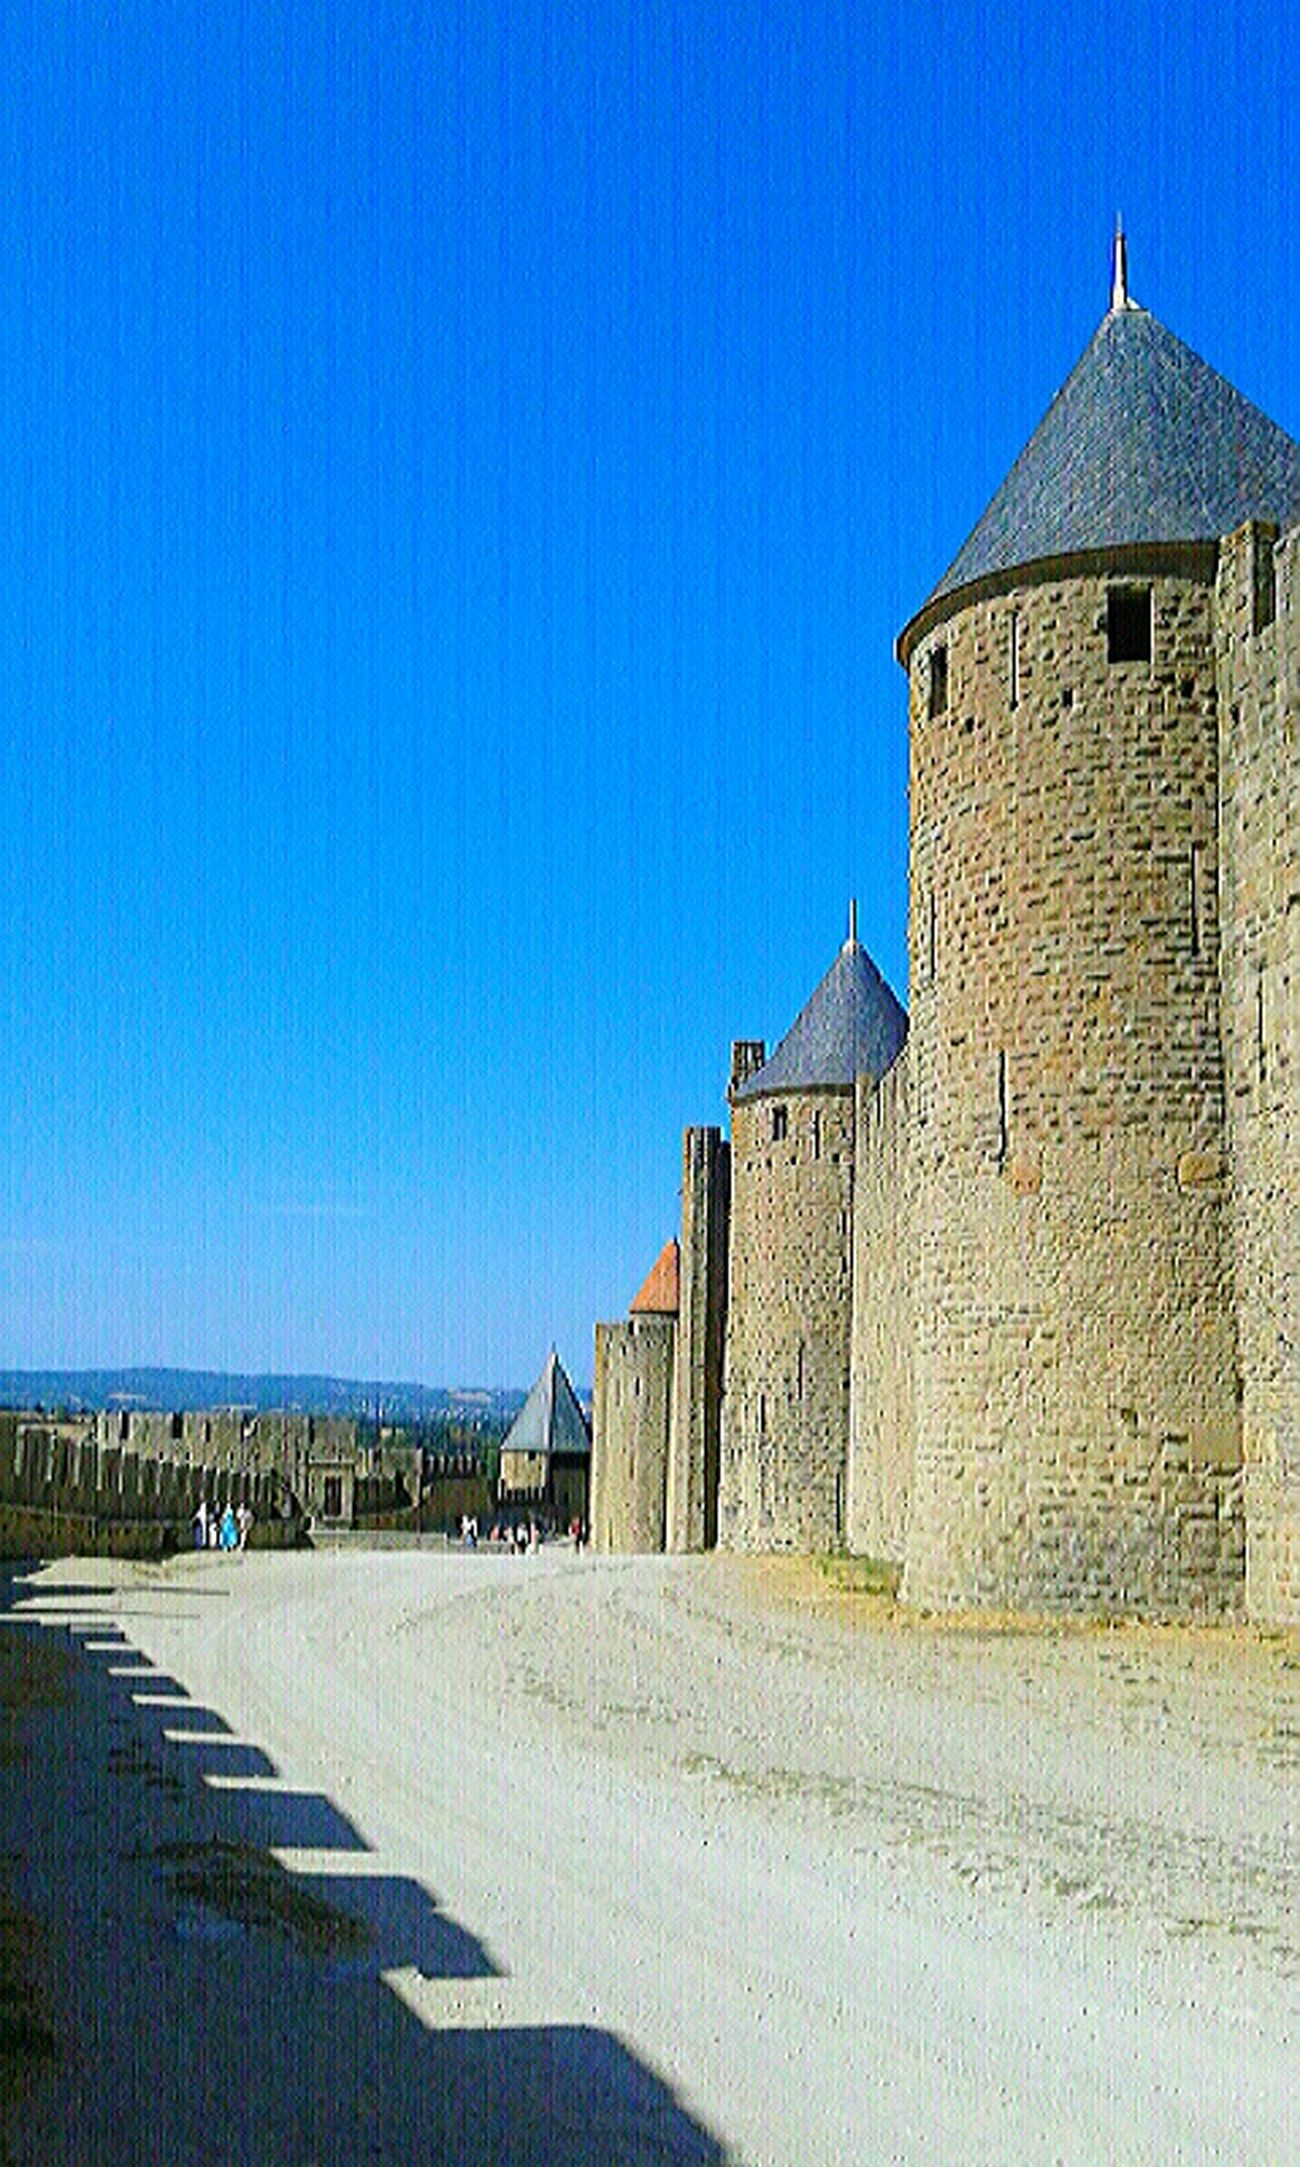 Château en Carcassonne France Architecture Tranquility Macro_collection Pivotal Ideas Macro Beauty Macro Photography Macro Belleza Green Color Built Structure Building Exterior Ancienne Clear Sky Blue Architecture Built Structure Building Exterior Empty Road Copy Space The Way Forward Solitude Long Tranquility